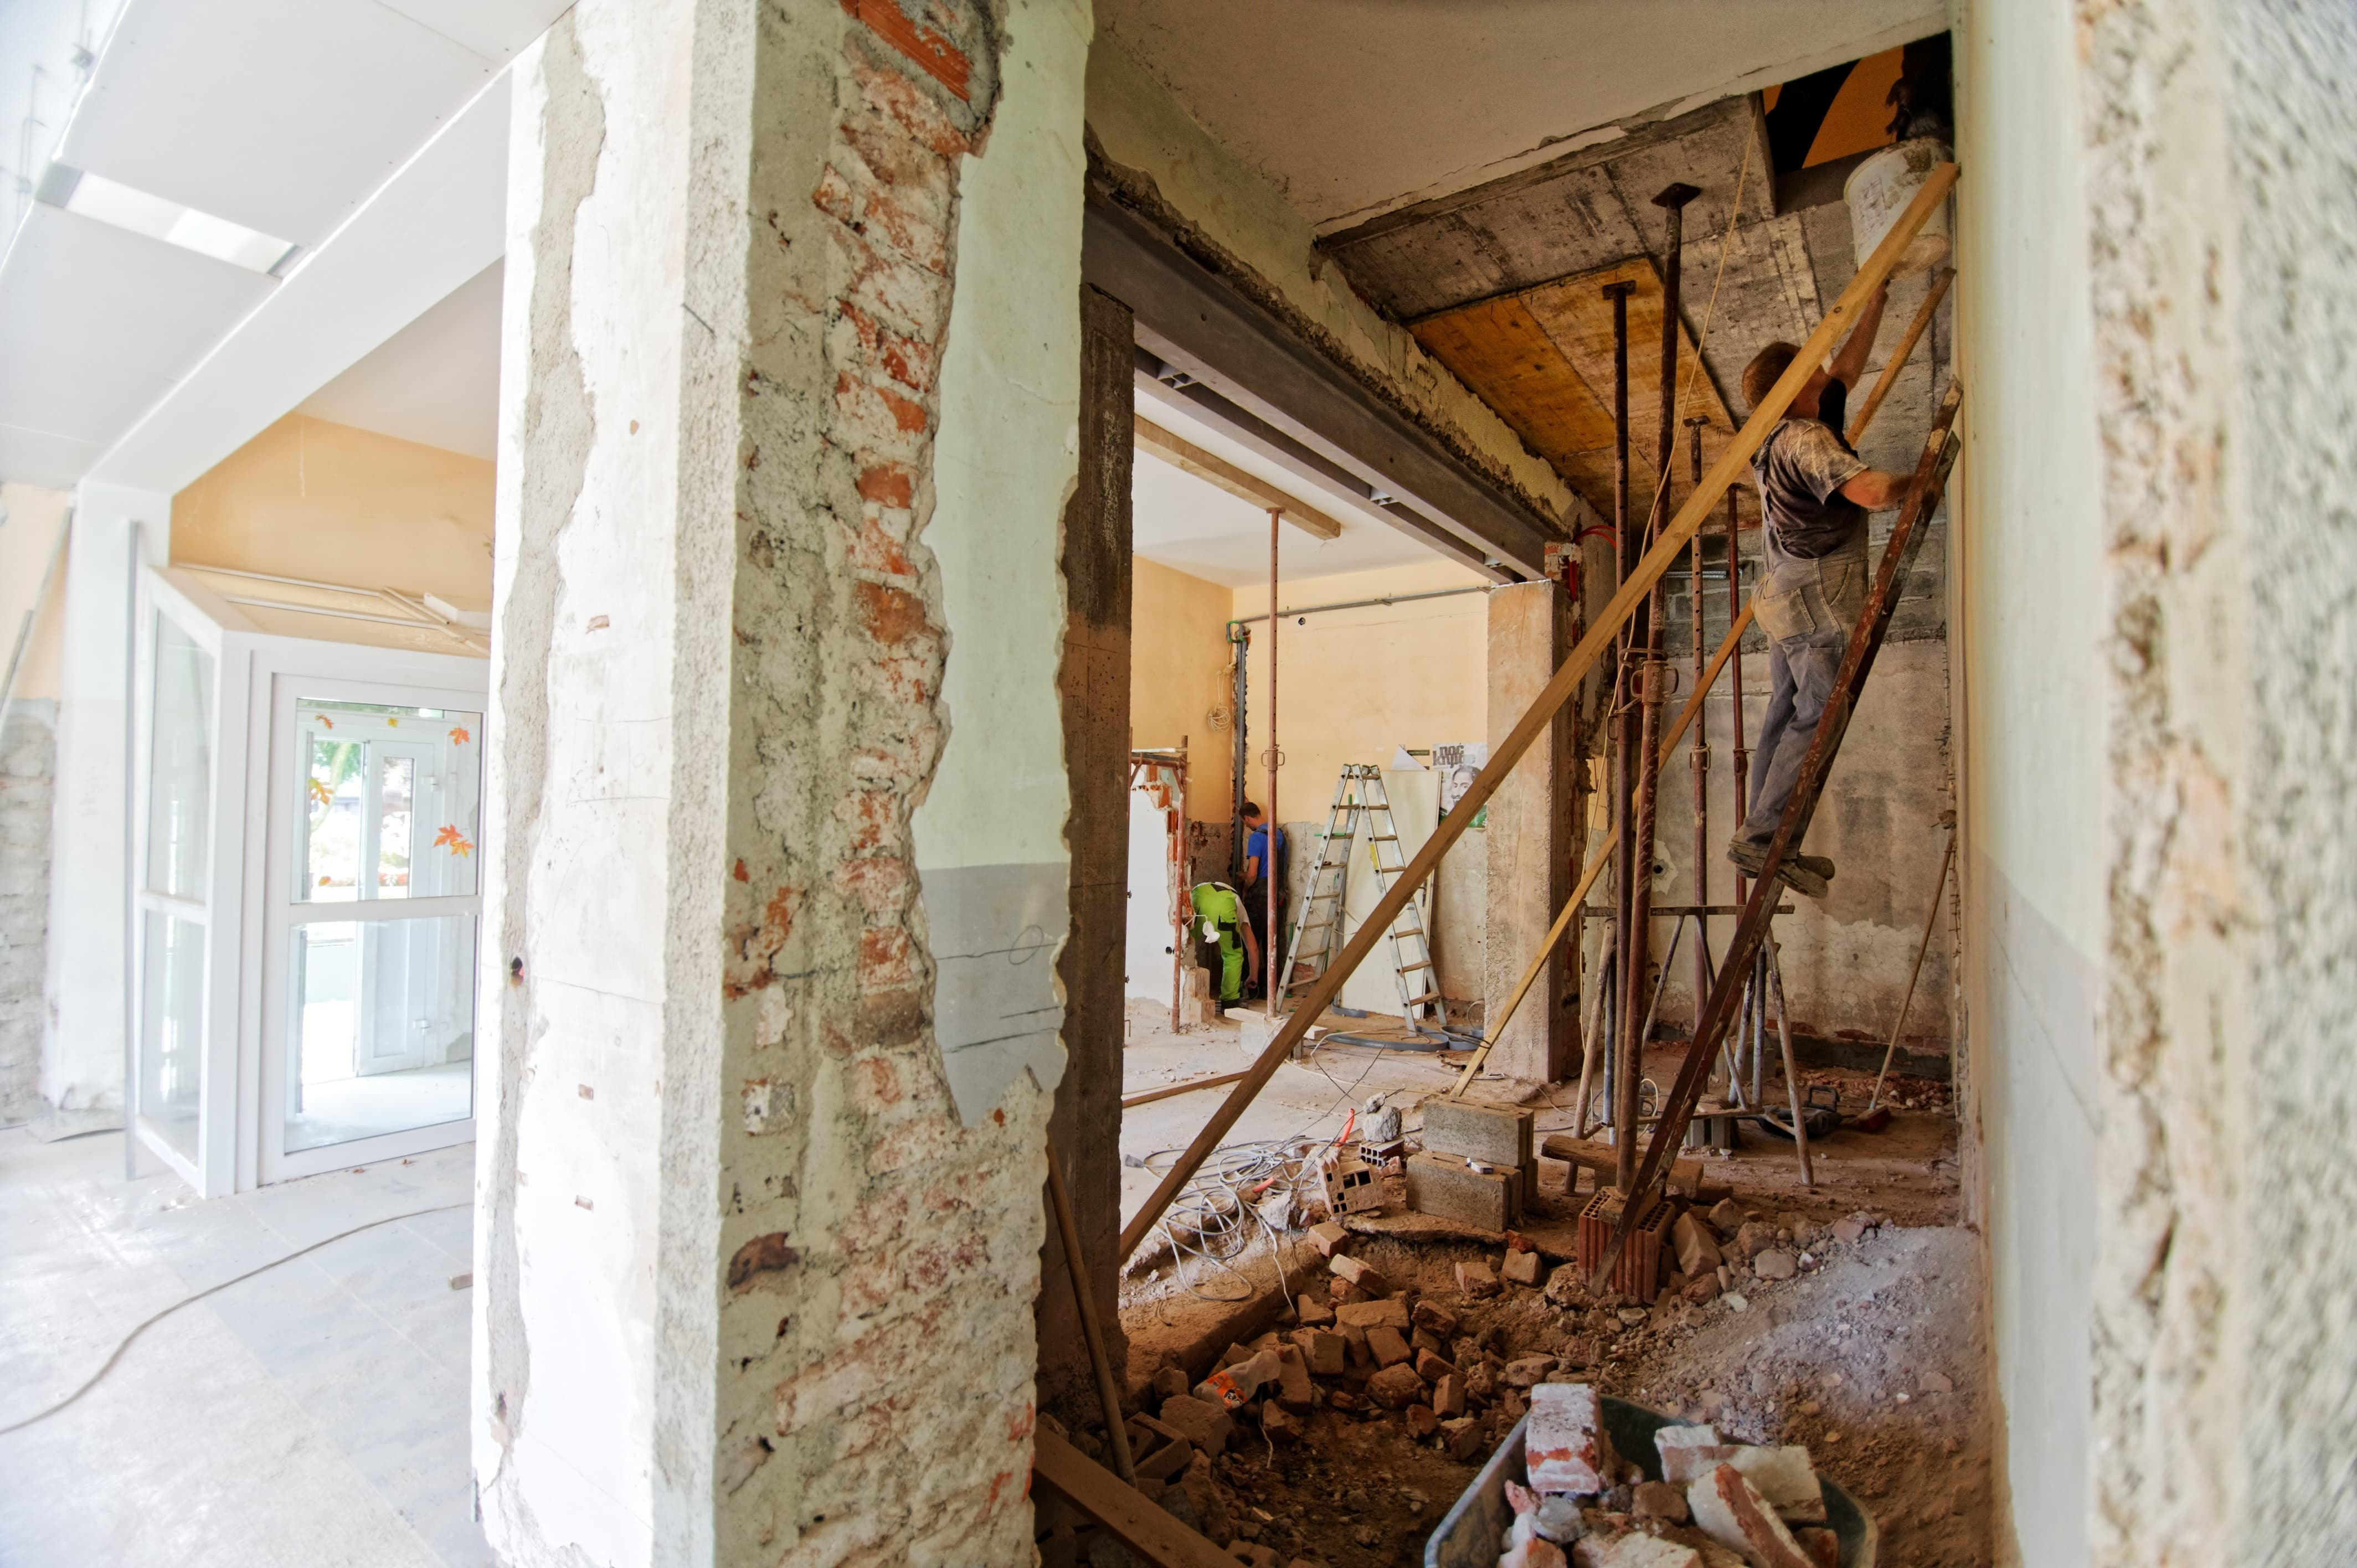 outsourcing app development like outsourcing home renovation